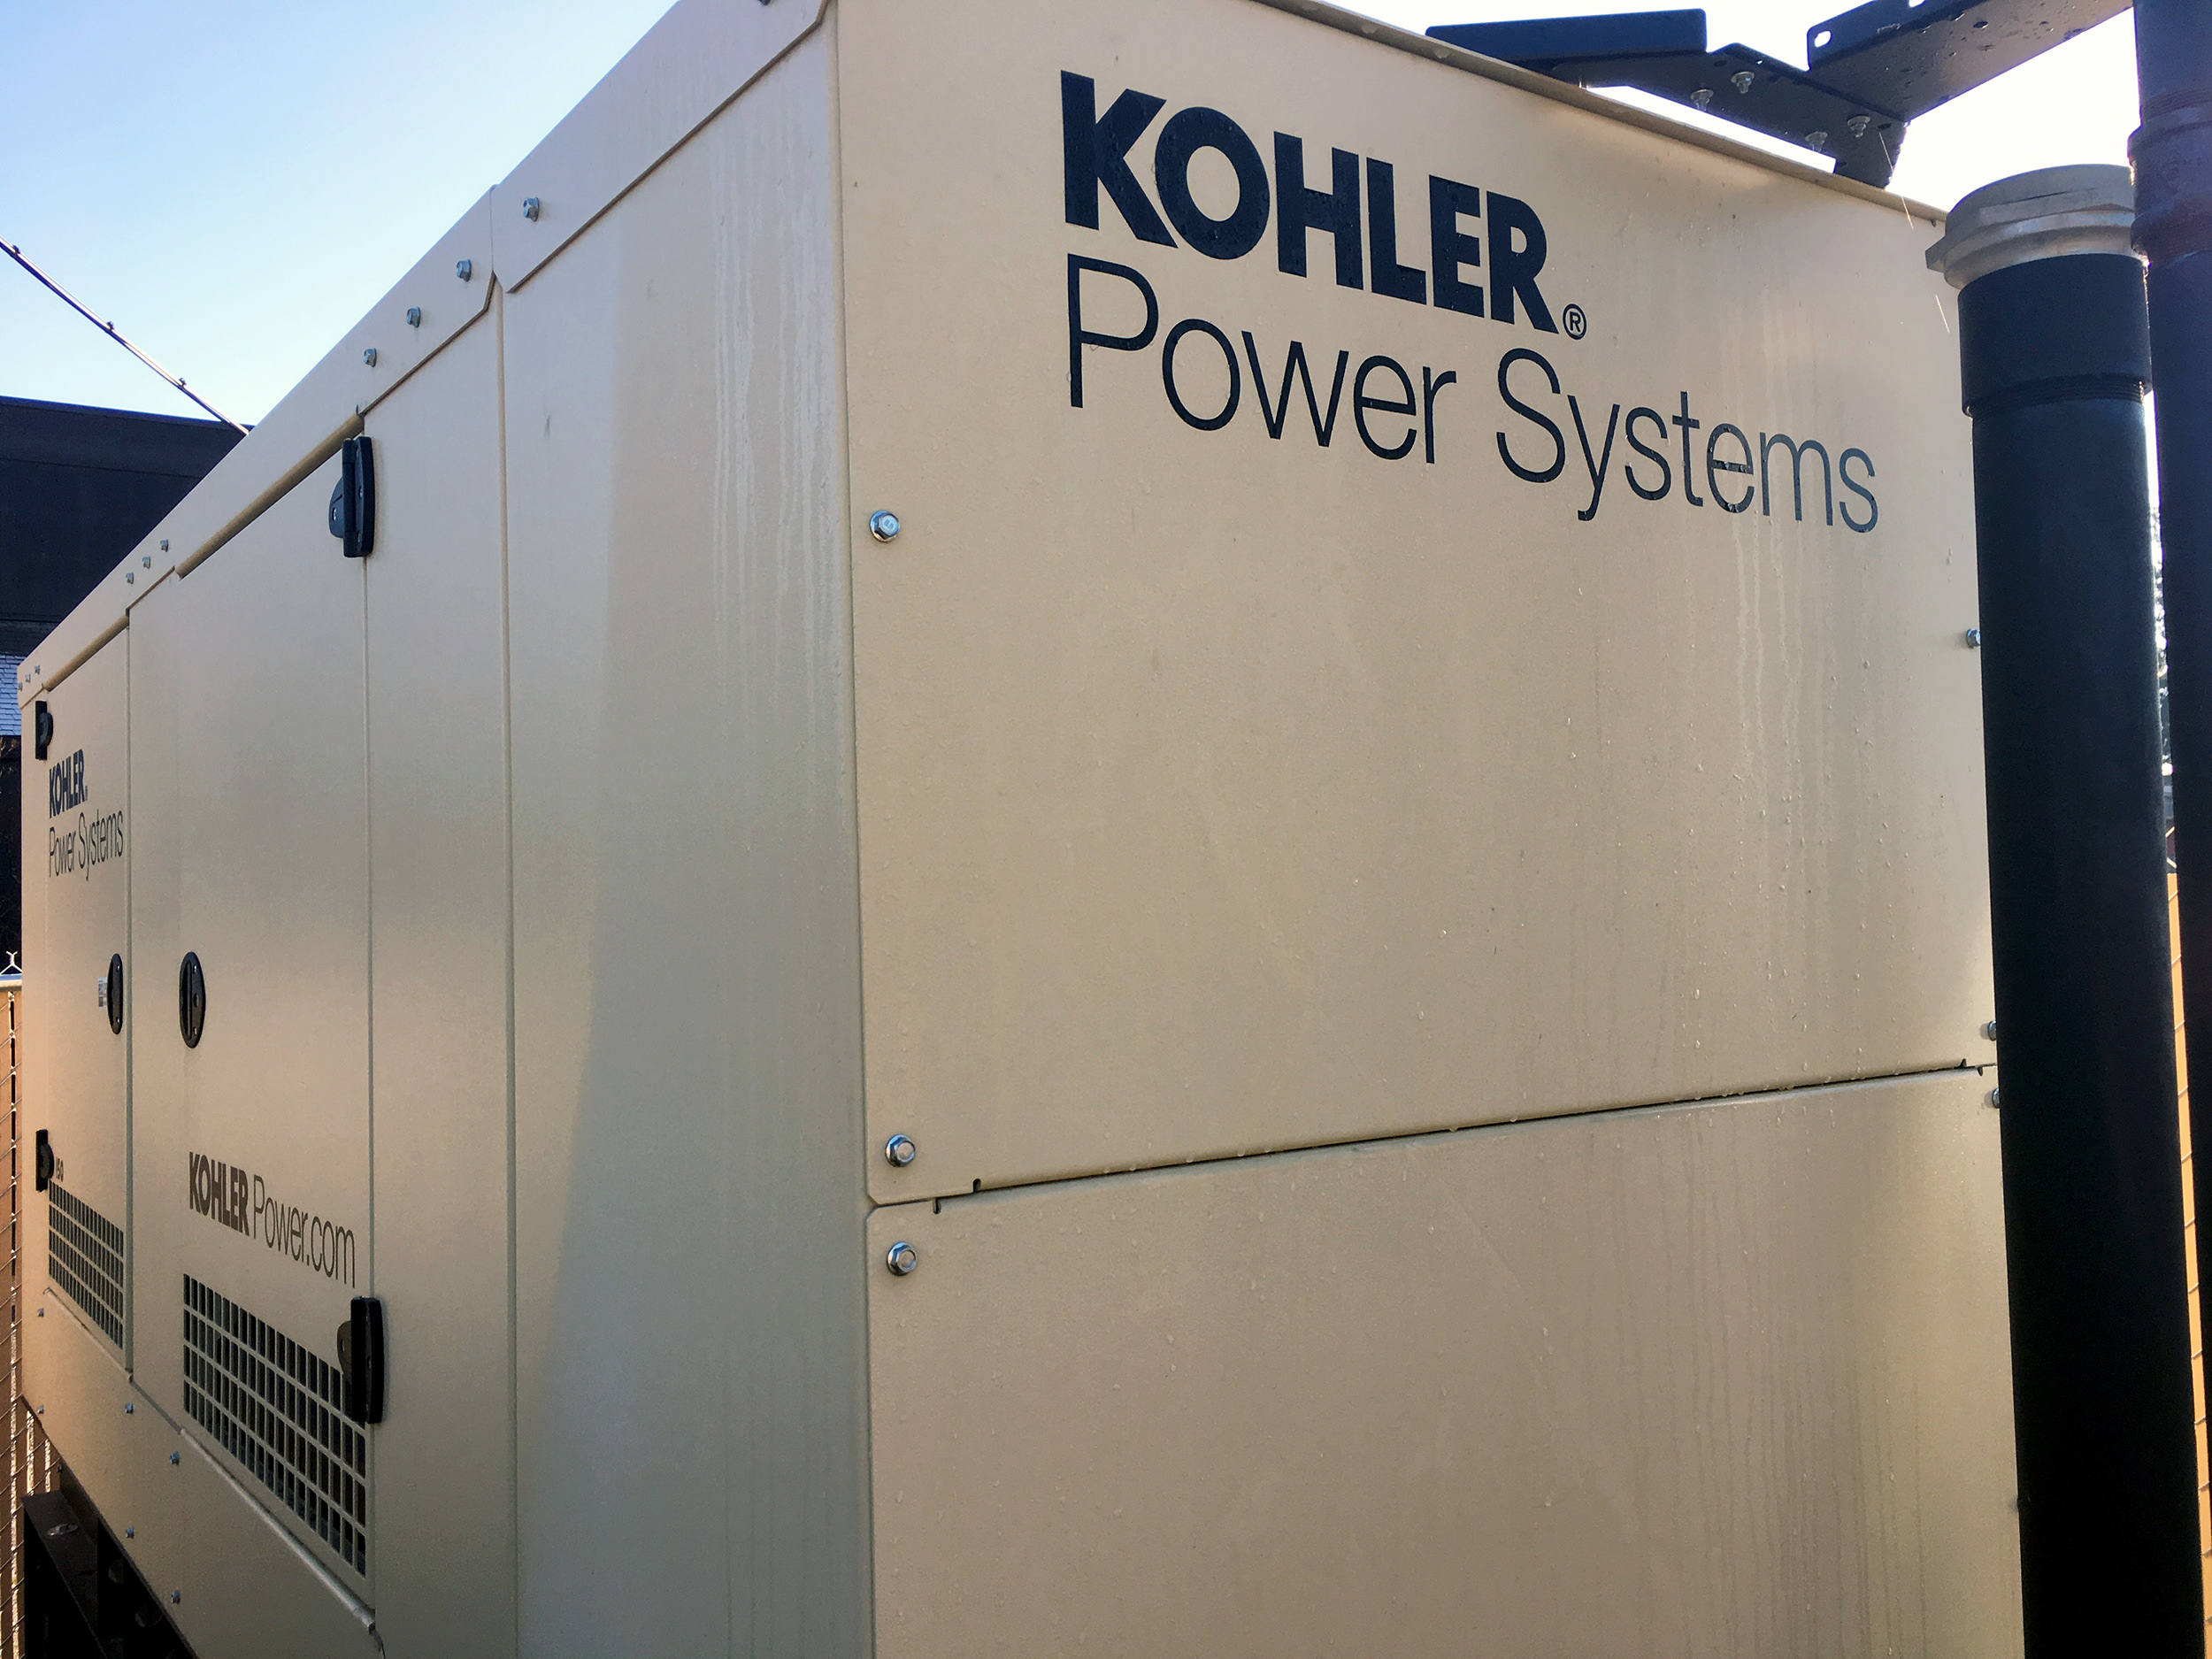 A new generator was installed in preparation of power outages